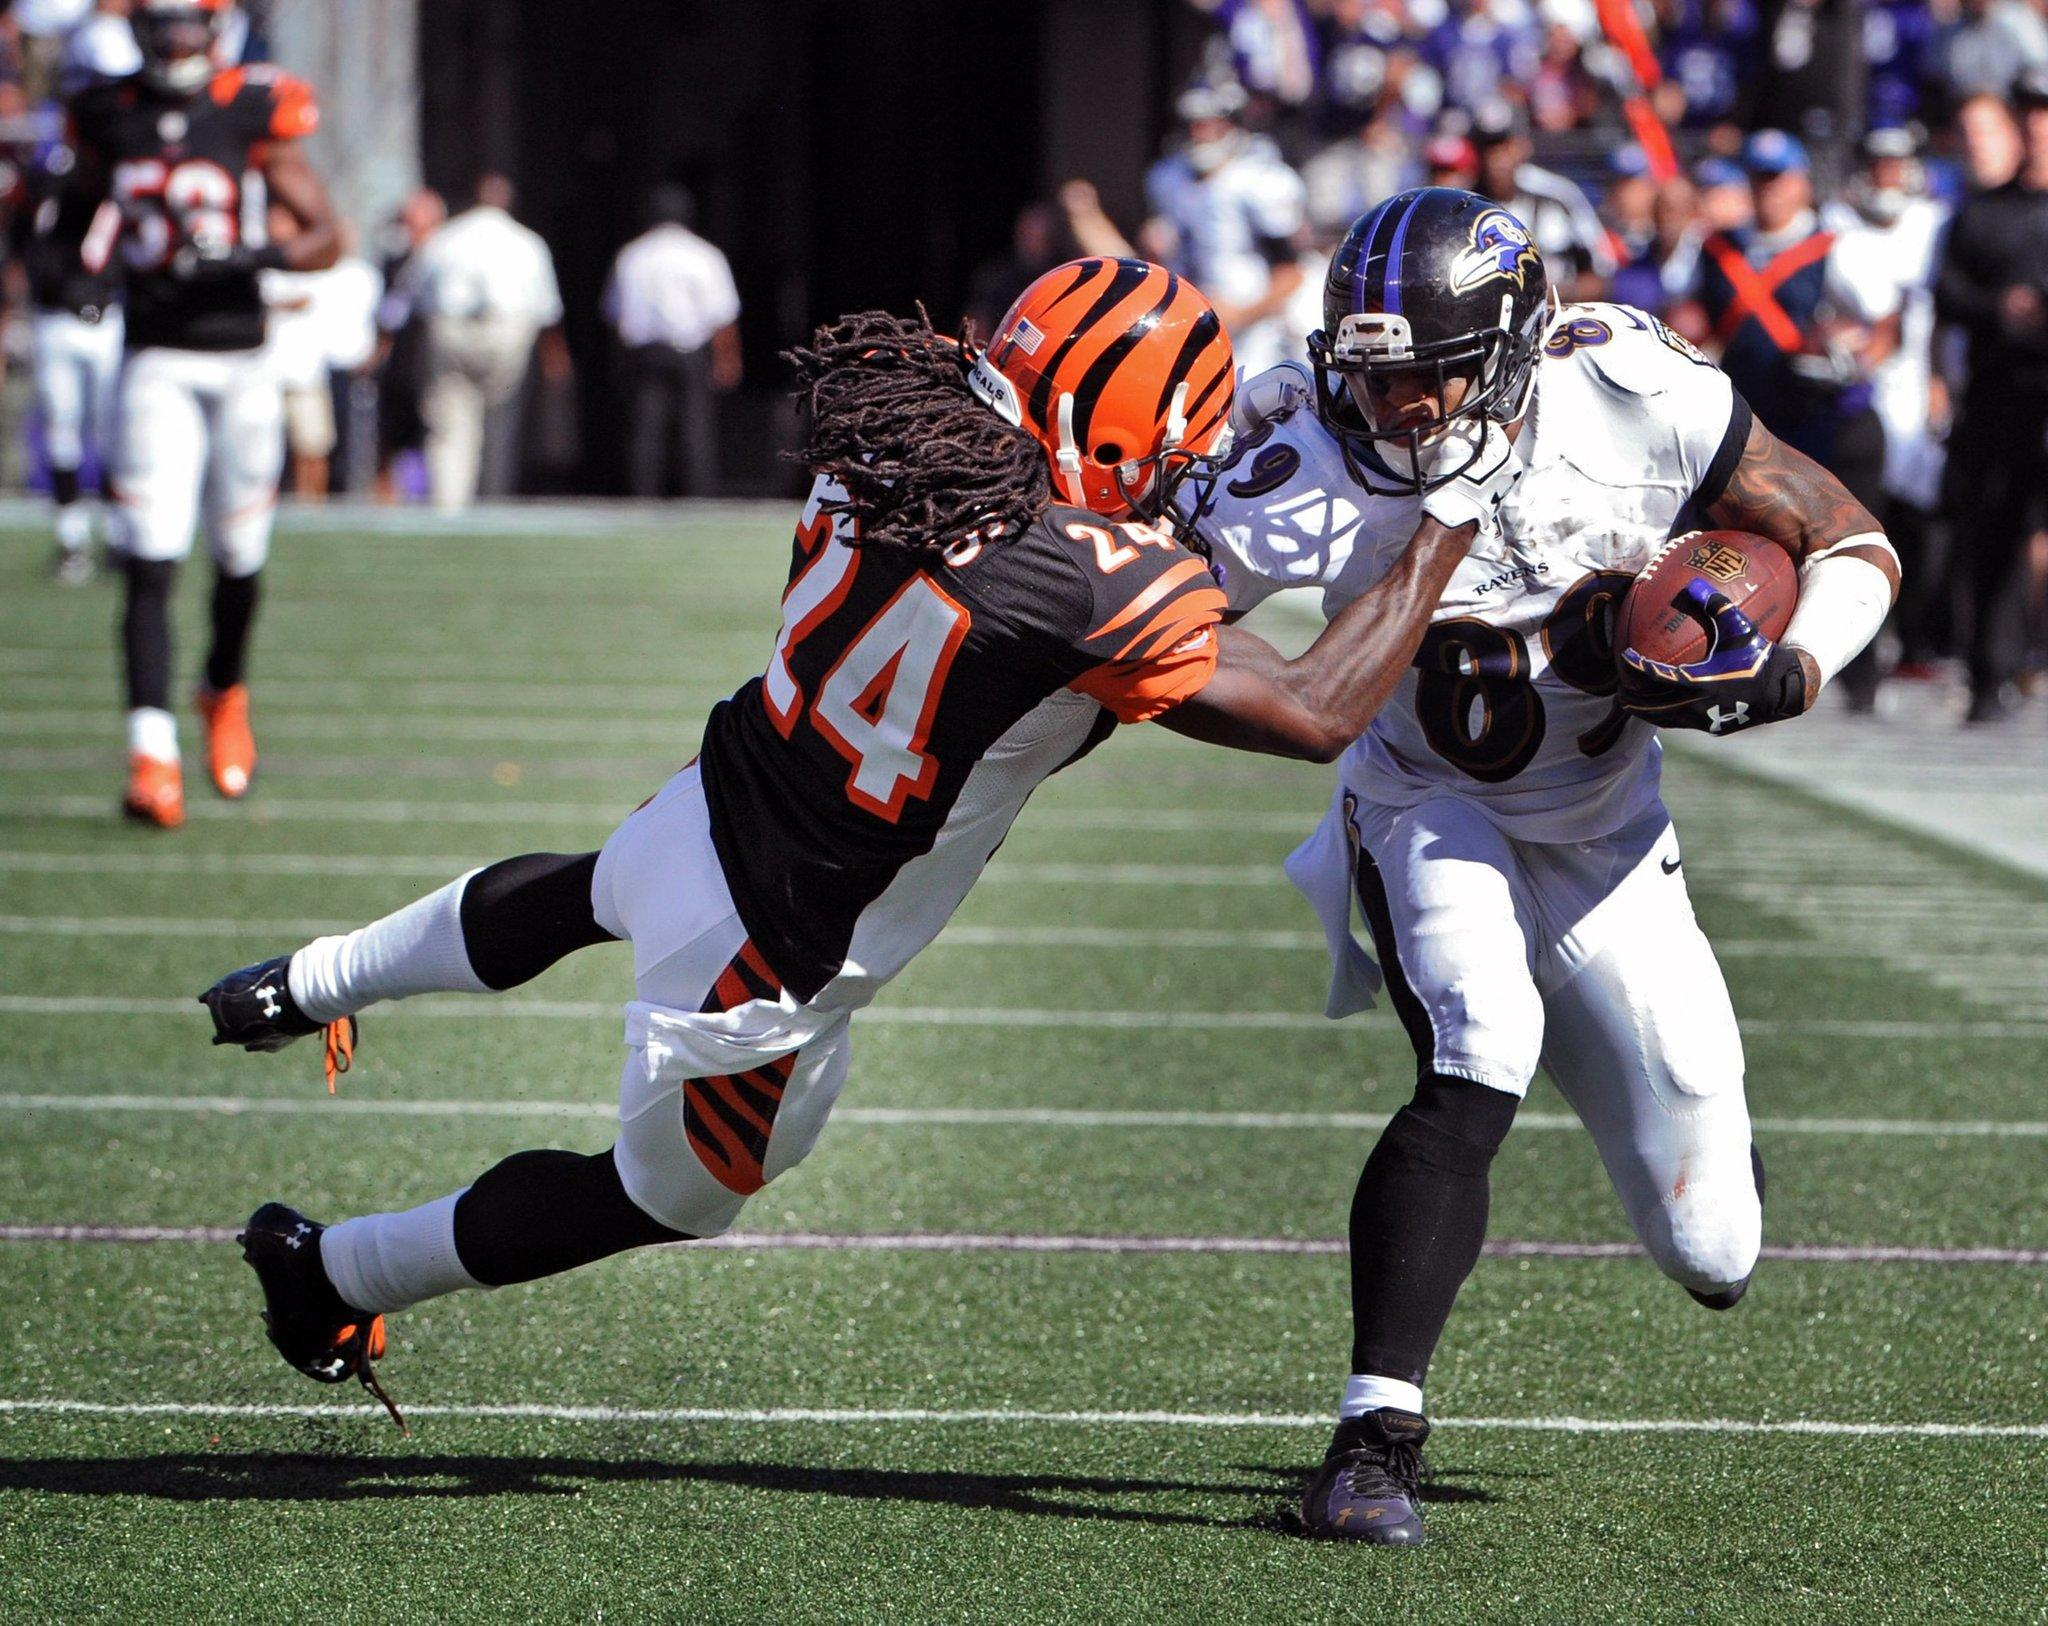 Ravens wide receiver Steve Smith Sr. throws down the Bengals' Adam Jones on the way to the end zone for an 80-yard touchdown.